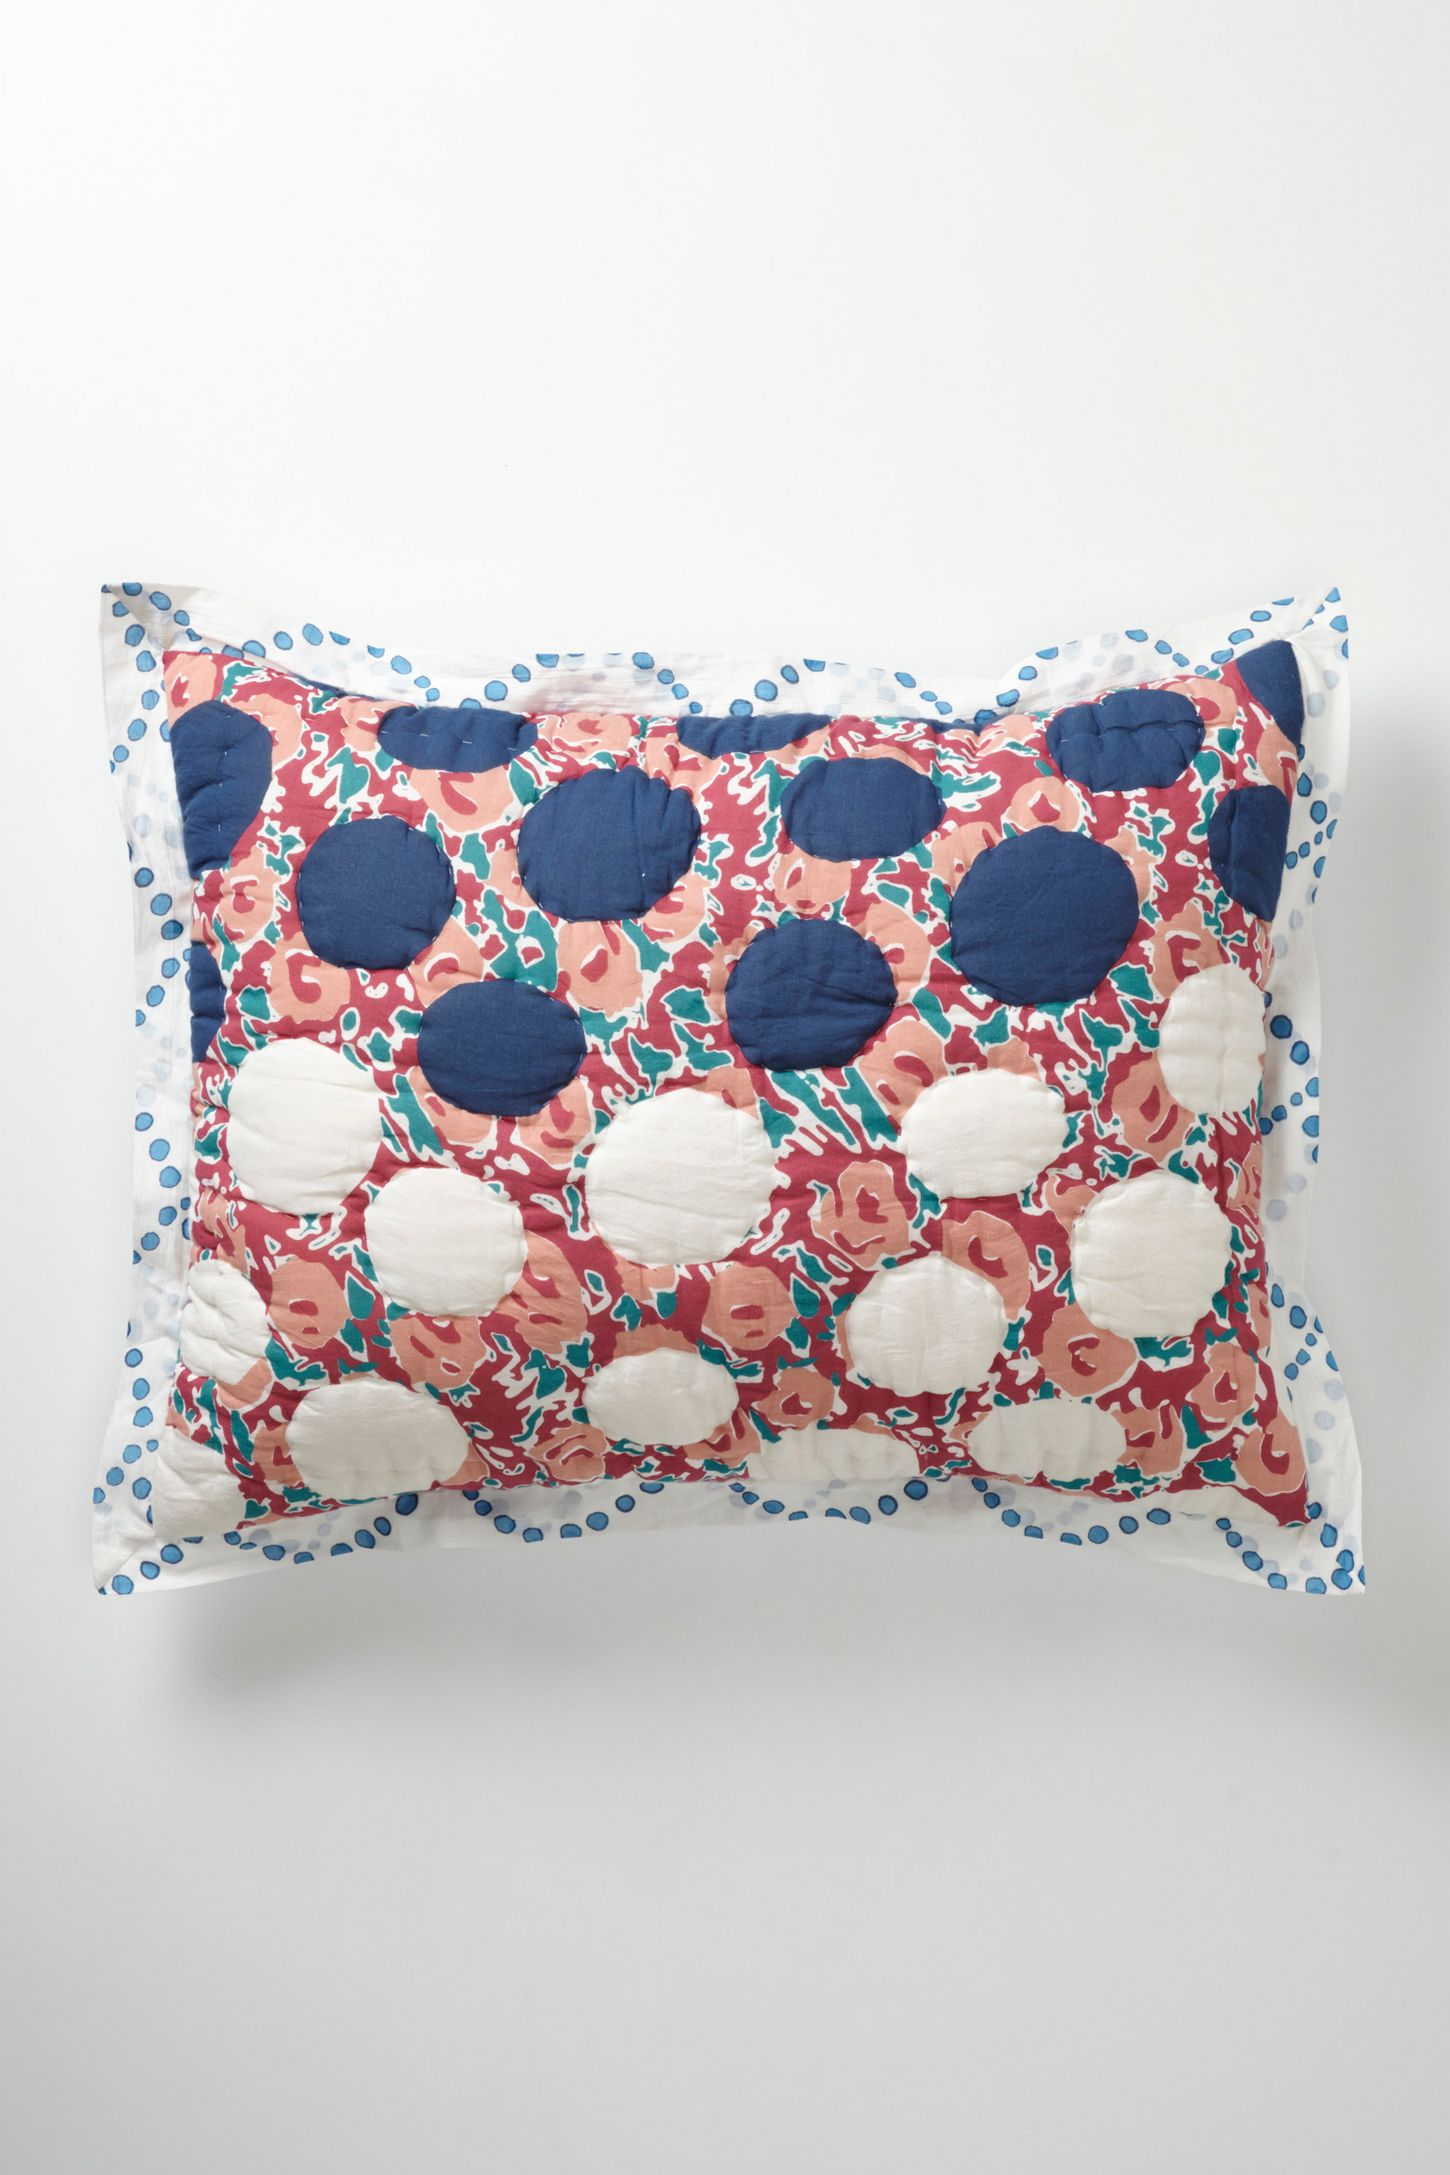 Tahla Shams | Anthropologie : tahla quilt anthropologie - Adamdwight.com